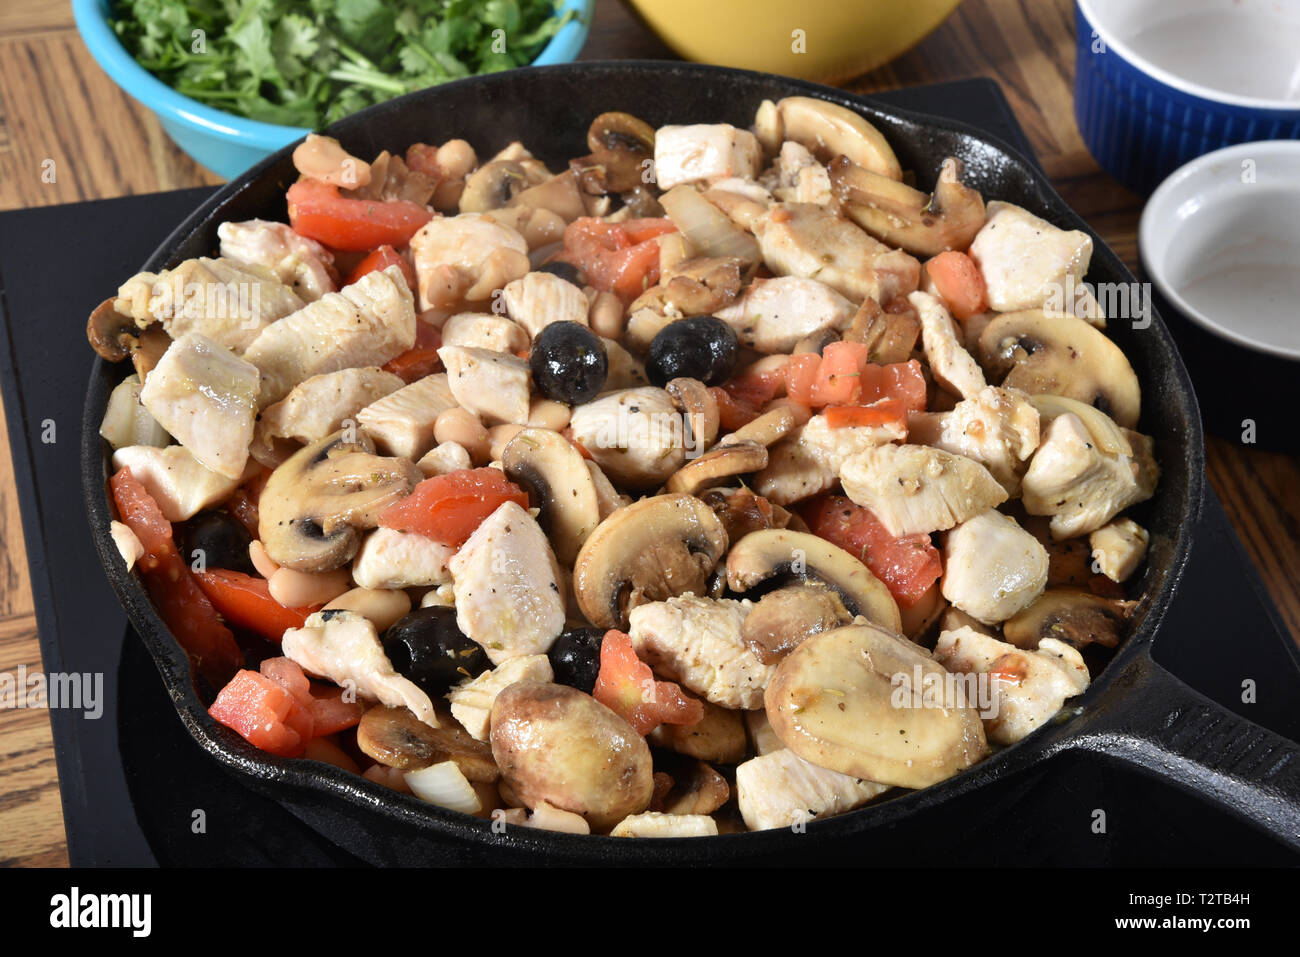 Chicken, tomatoes, mushrooms, onions, black olives and seasonings simmering in a cast iron skillet - Stock Image